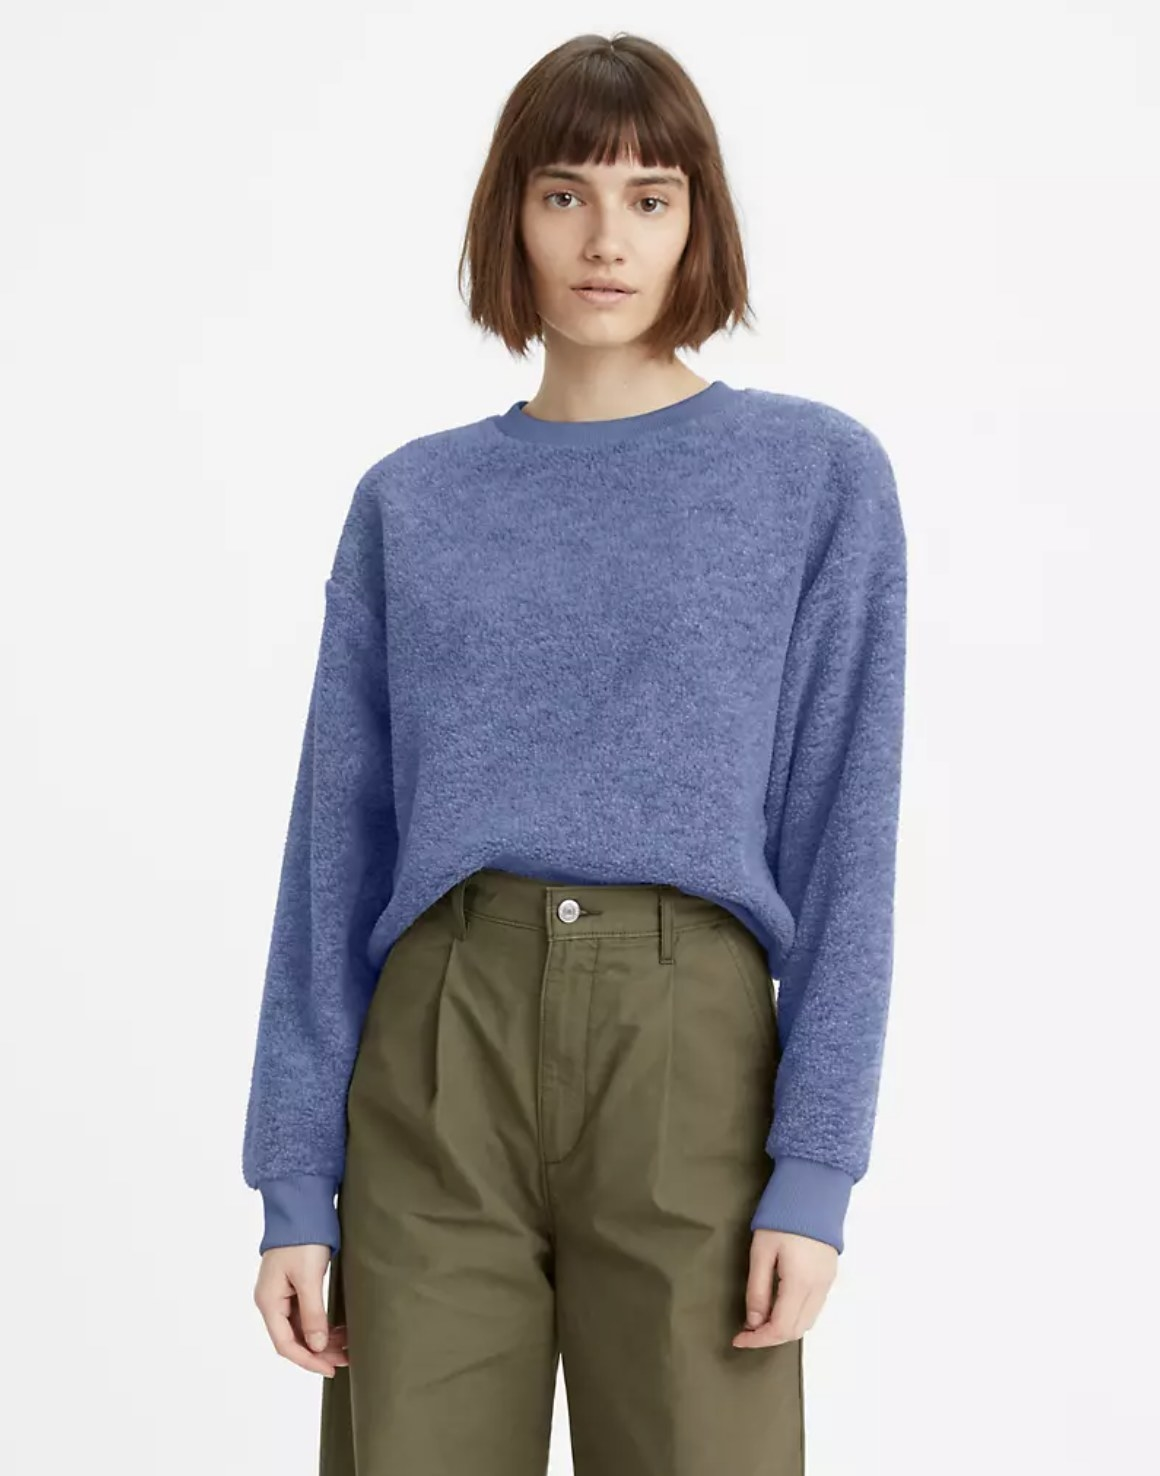 Model is wearing olive pants and a blue crewneck sweatshirt